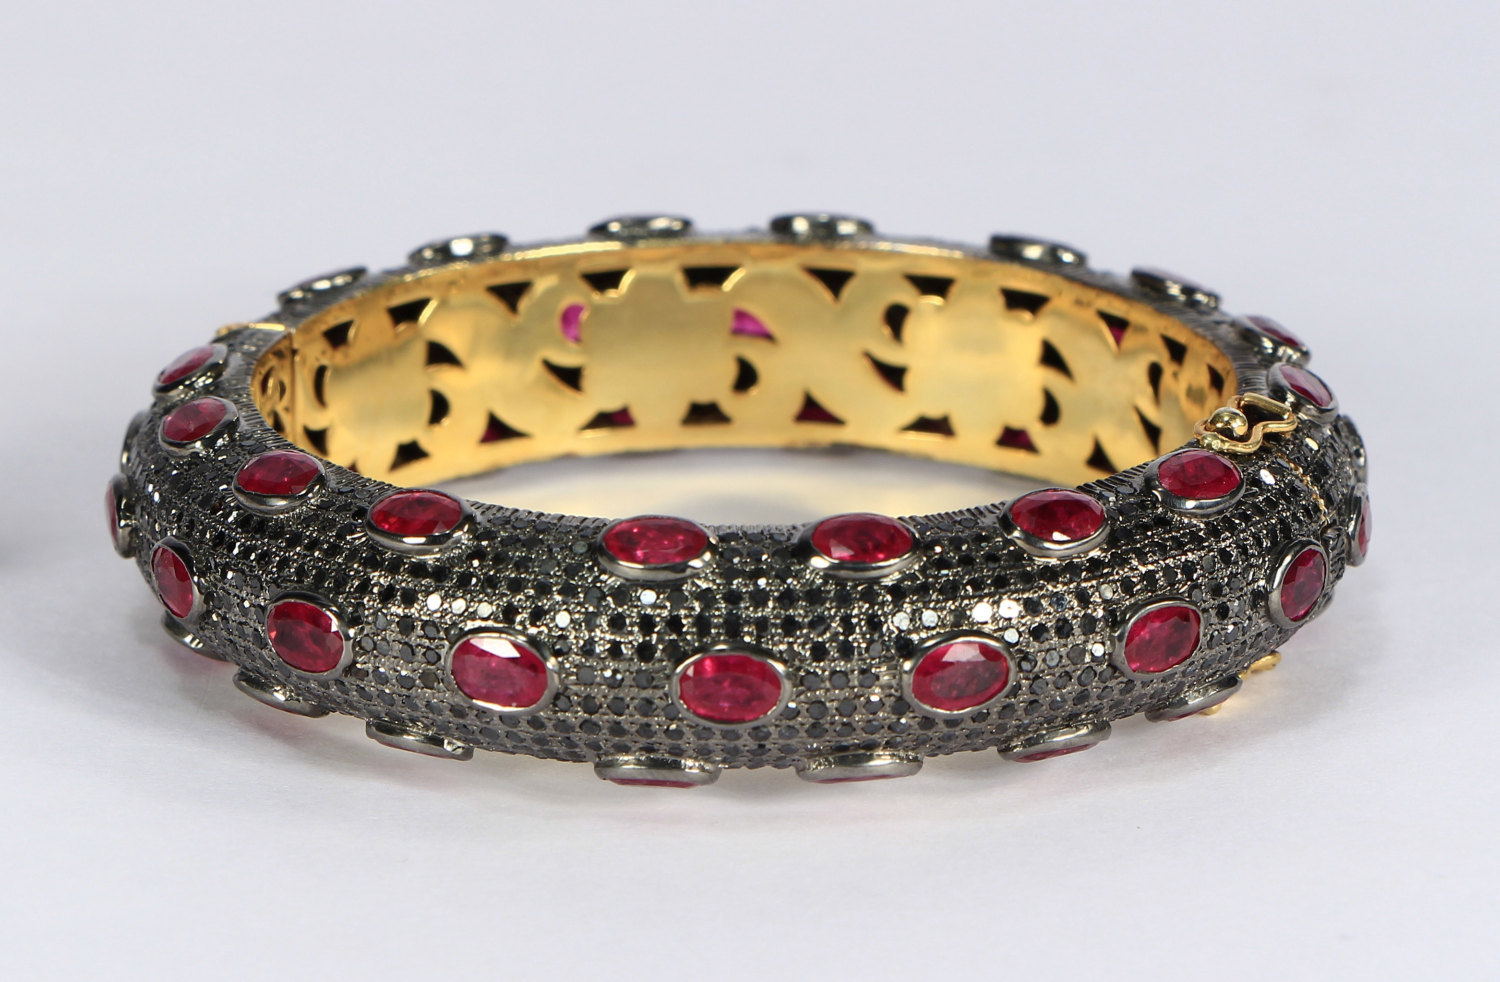 Round Bangle Cuff .925 SterlingSilver with12 lines of Black Pave Diamonds & Ruby